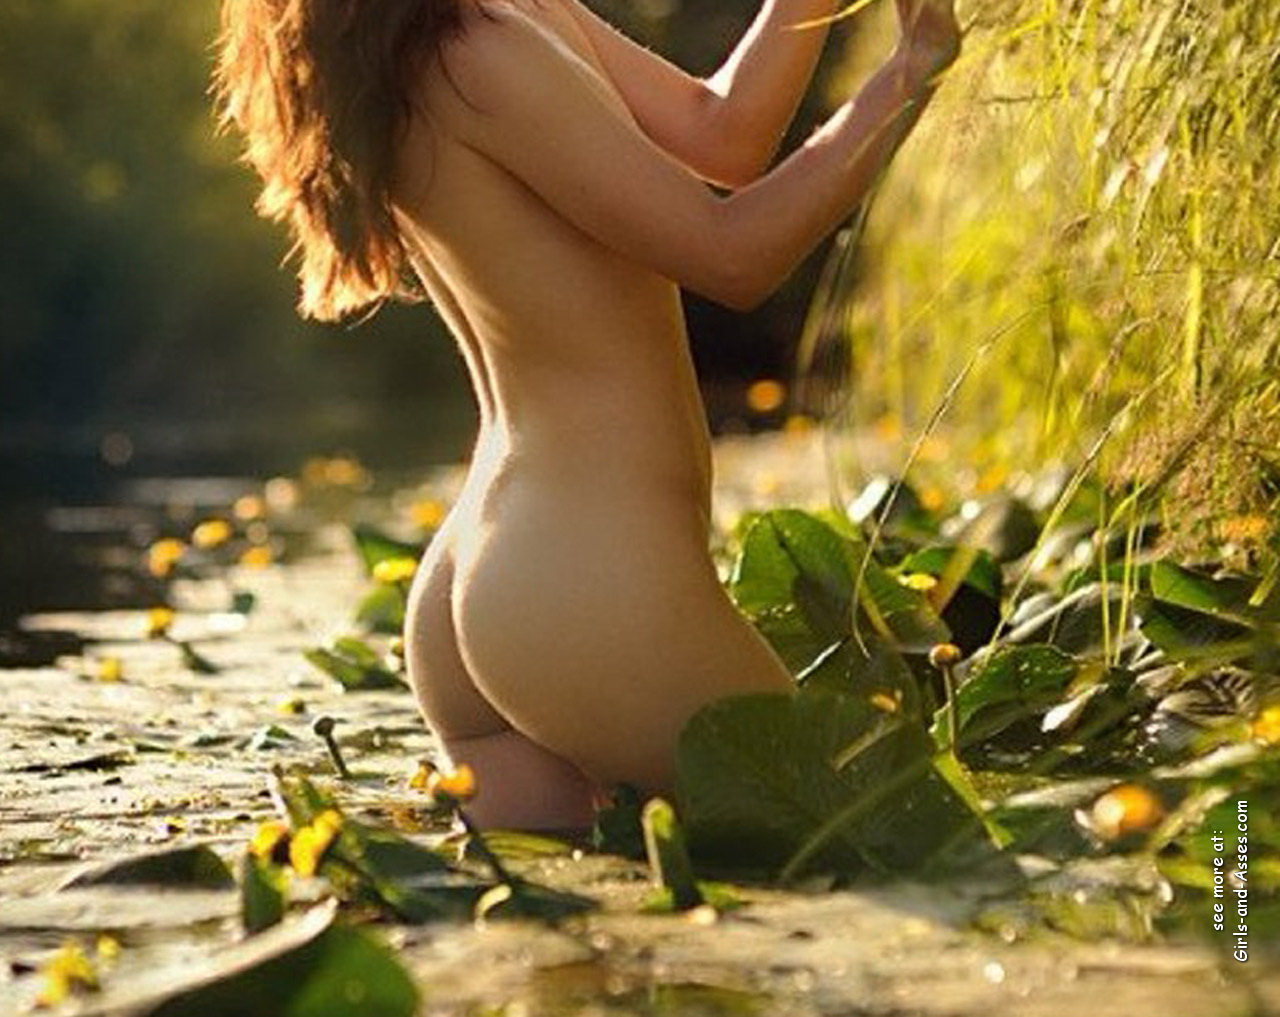 naked girl with cute butt on the river photo 09853